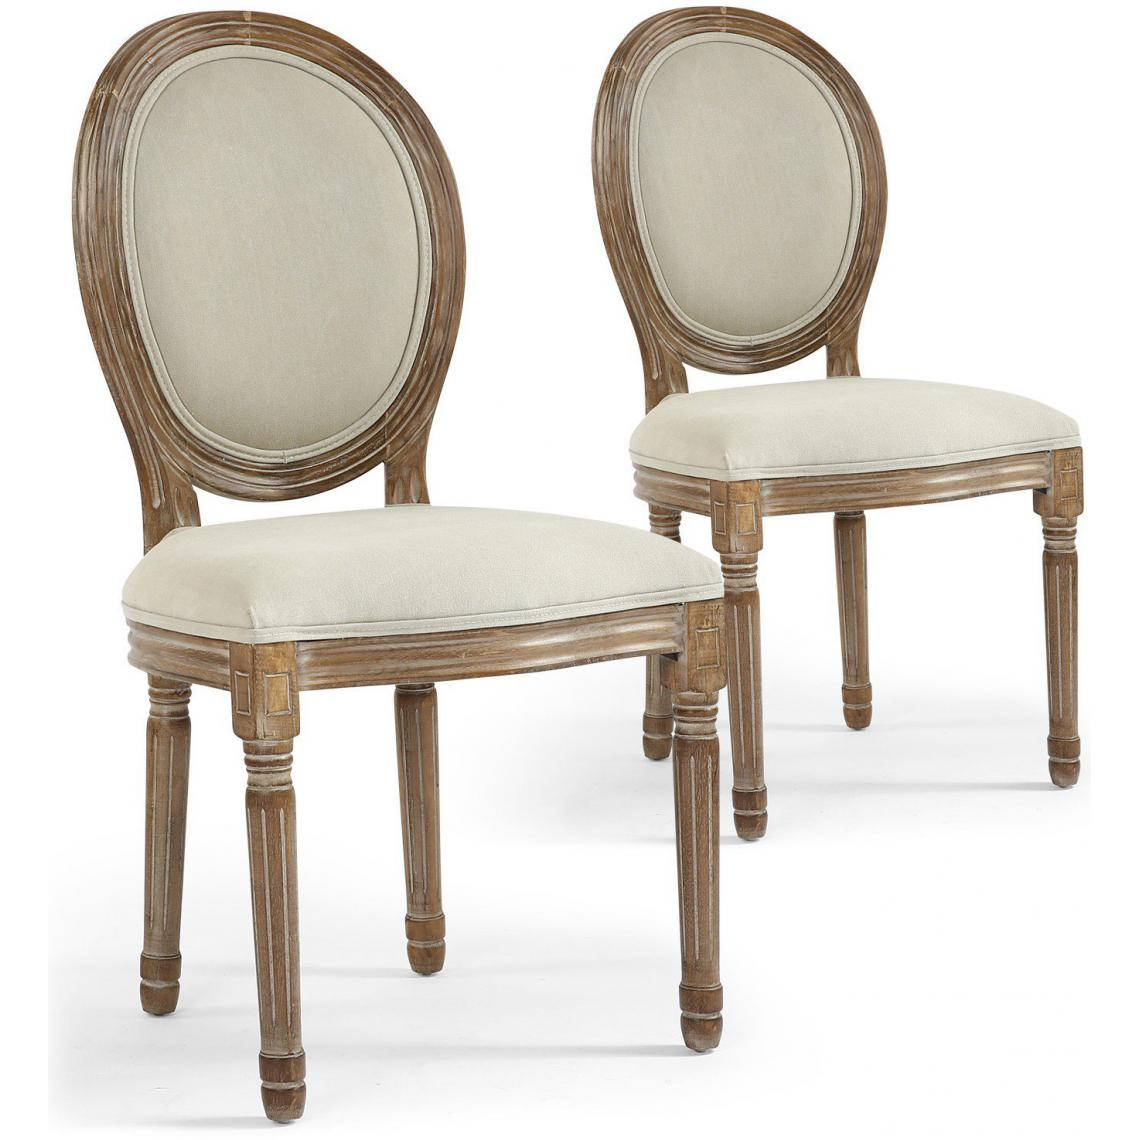 lot de 2 chaises m daillon tissu marron et beige versailles 3suisses. Black Bedroom Furniture Sets. Home Design Ideas